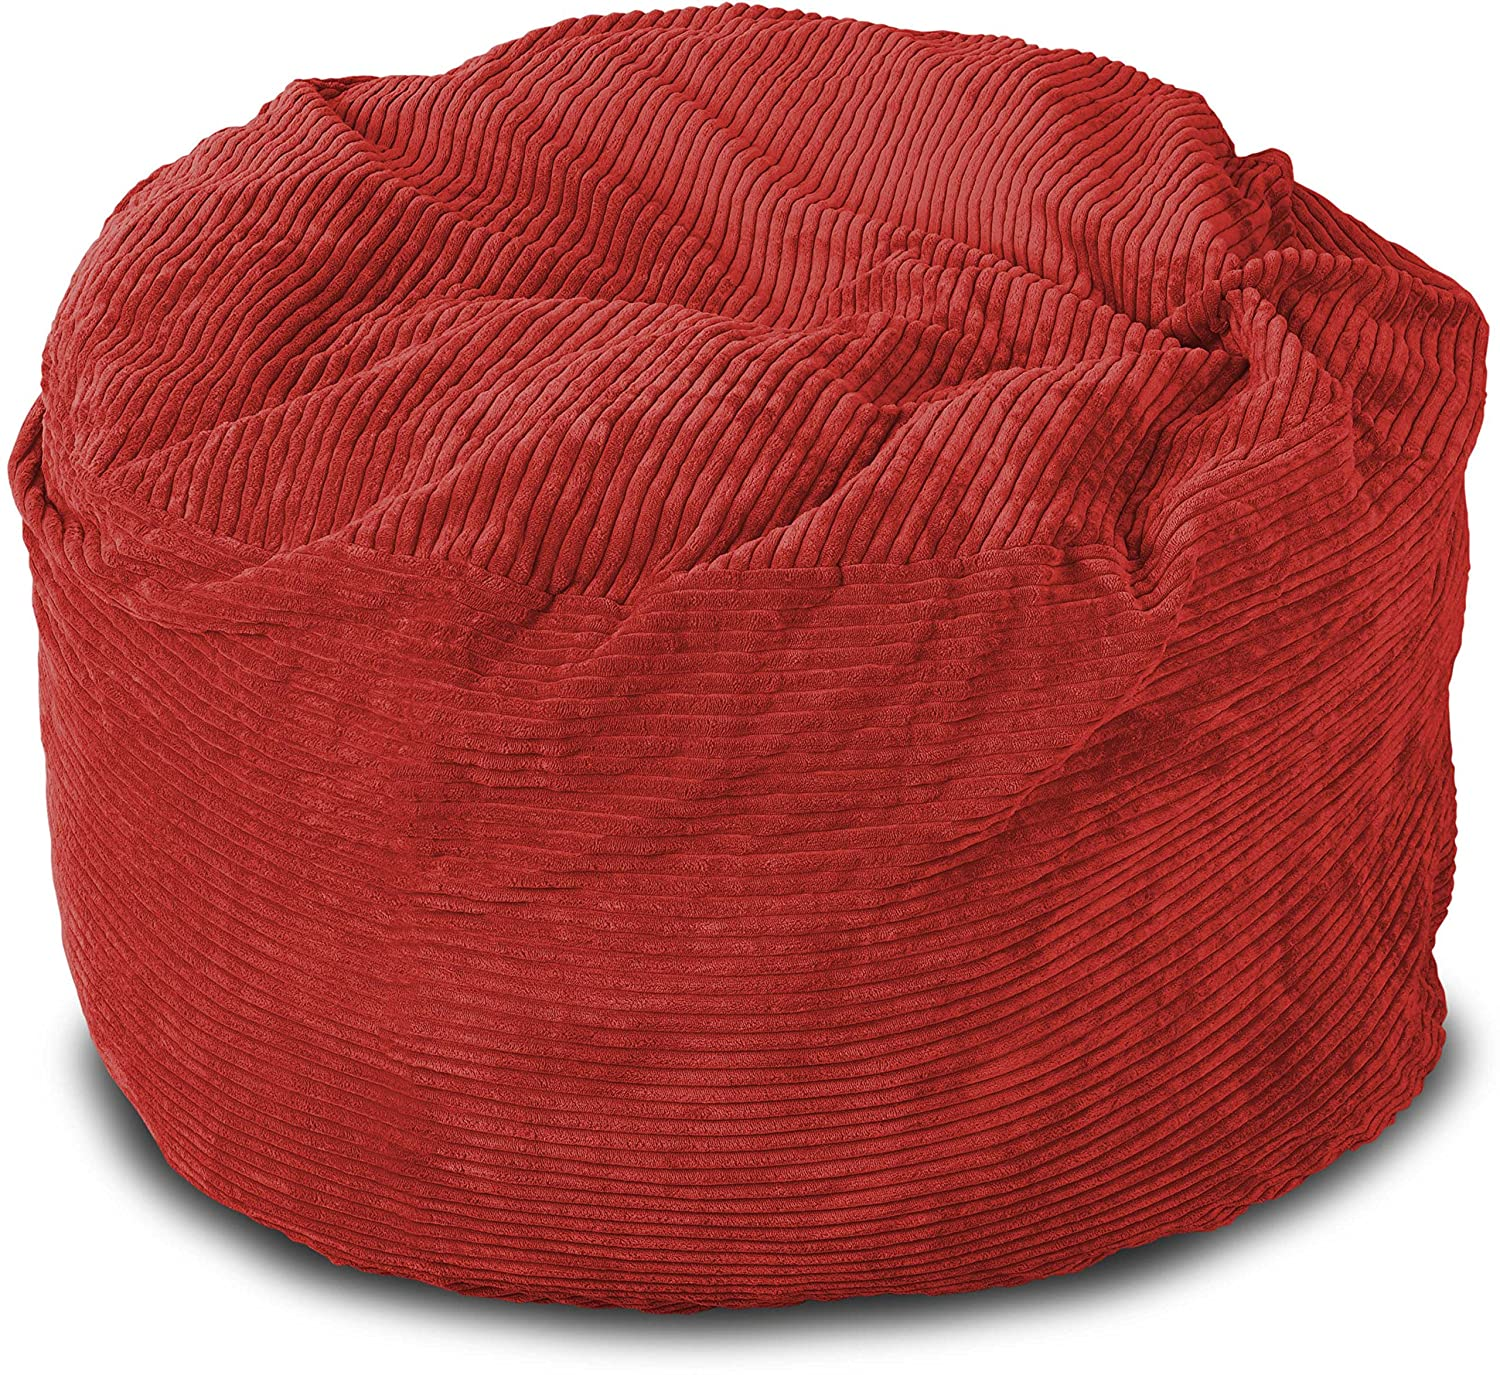 Amazon Lounge & Co Corduroy Round Foam Chair 36 Inch Red